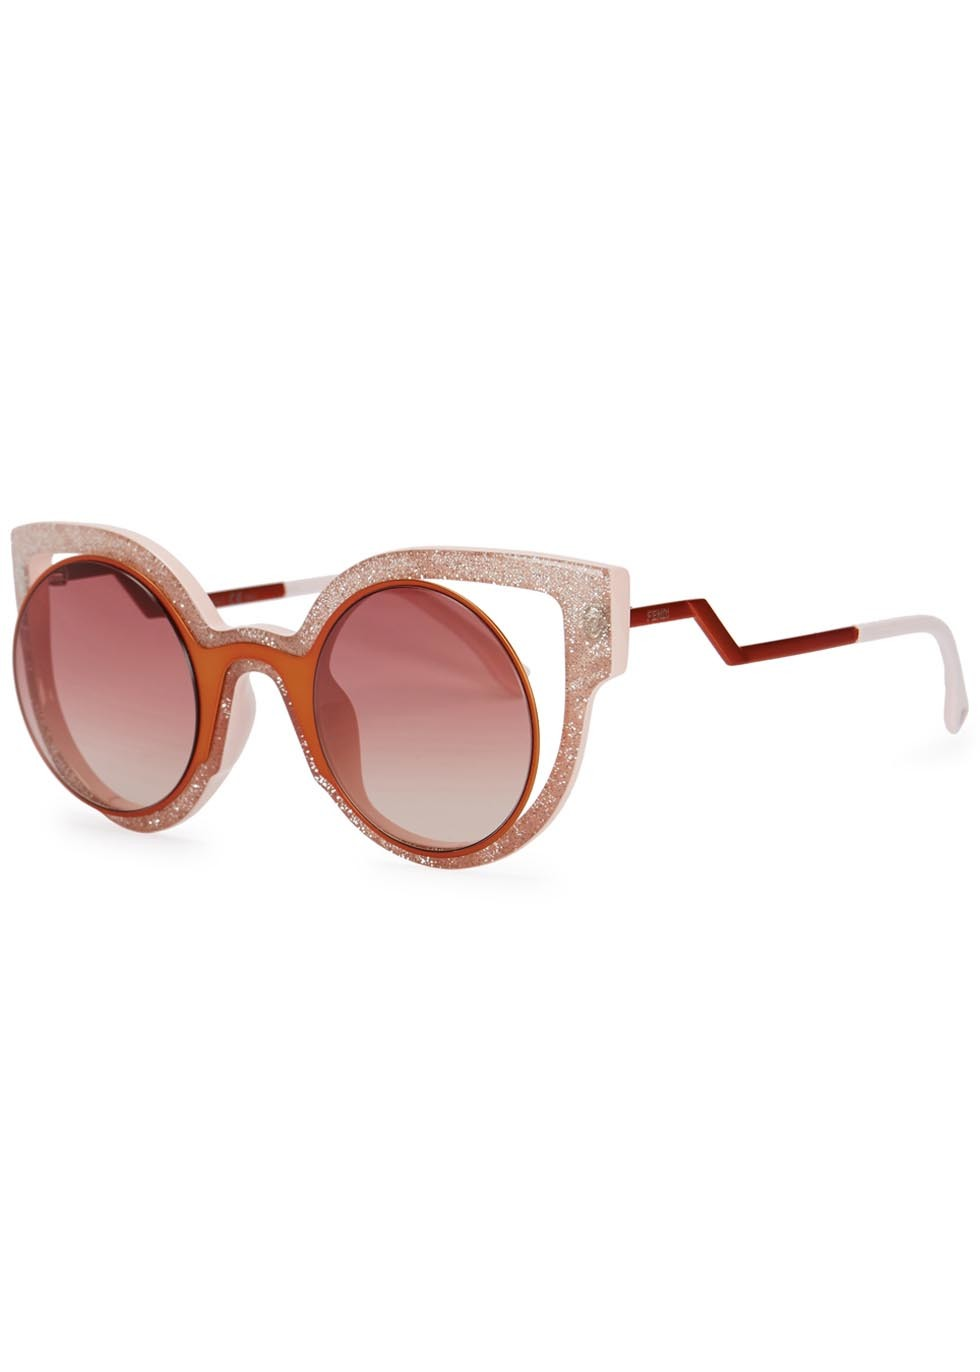 Pink Glittered Cat Eye Sunglasses - predominant colour: pink; secondary colour: tan; occasions: casual, holiday; style: cateye; size: large; material: plastic/rubber; finish: metallic; pattern: colourblock; season: a/w 2015; wardrobe: highlight